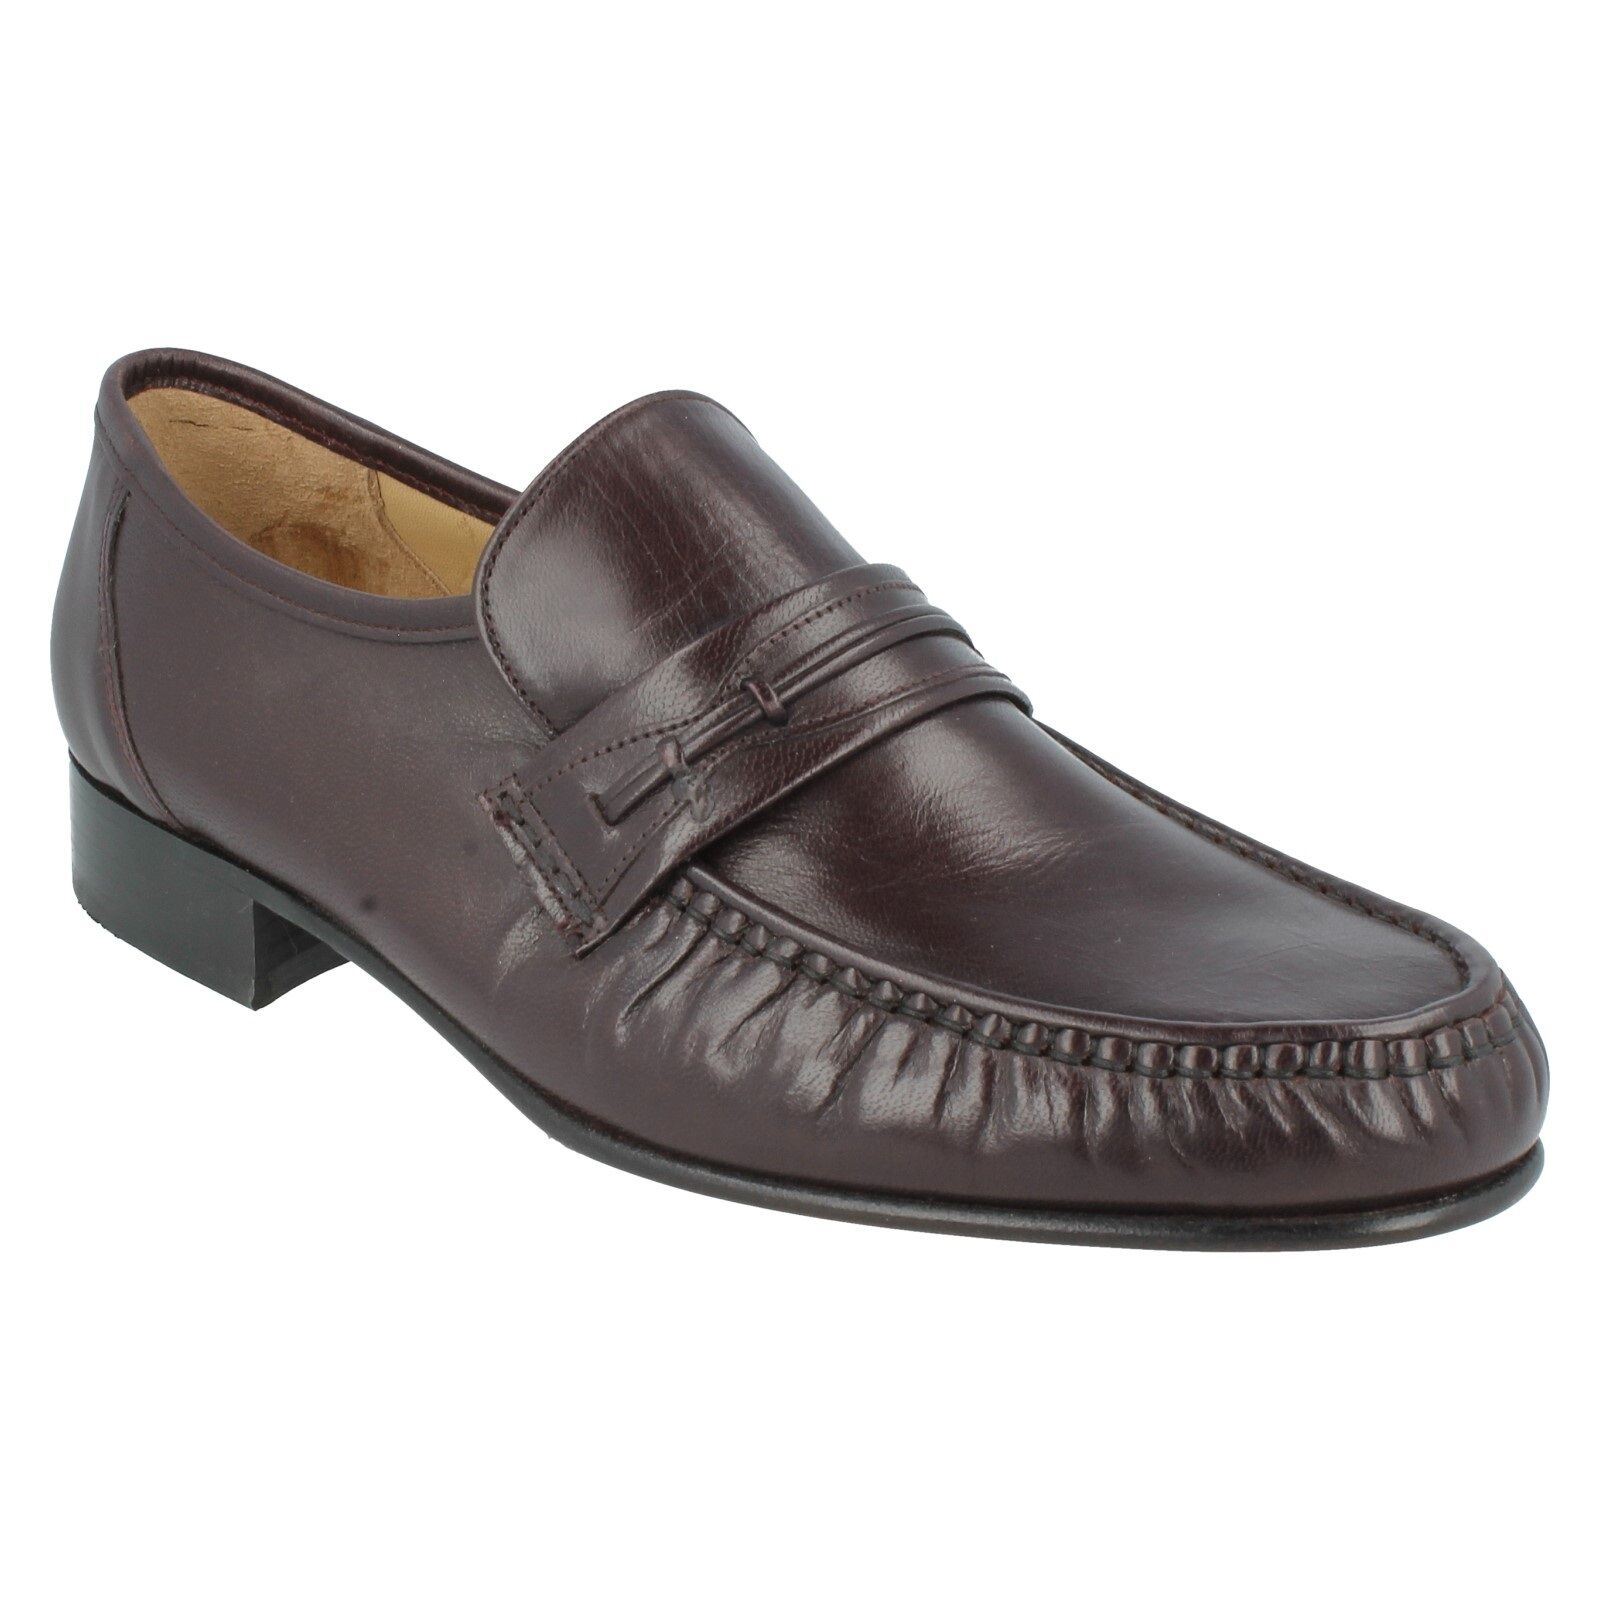 Orlando Homme GRENSON Bourgogne Cuir Slip On Mocassin Formal Work Chaussures Taille 8